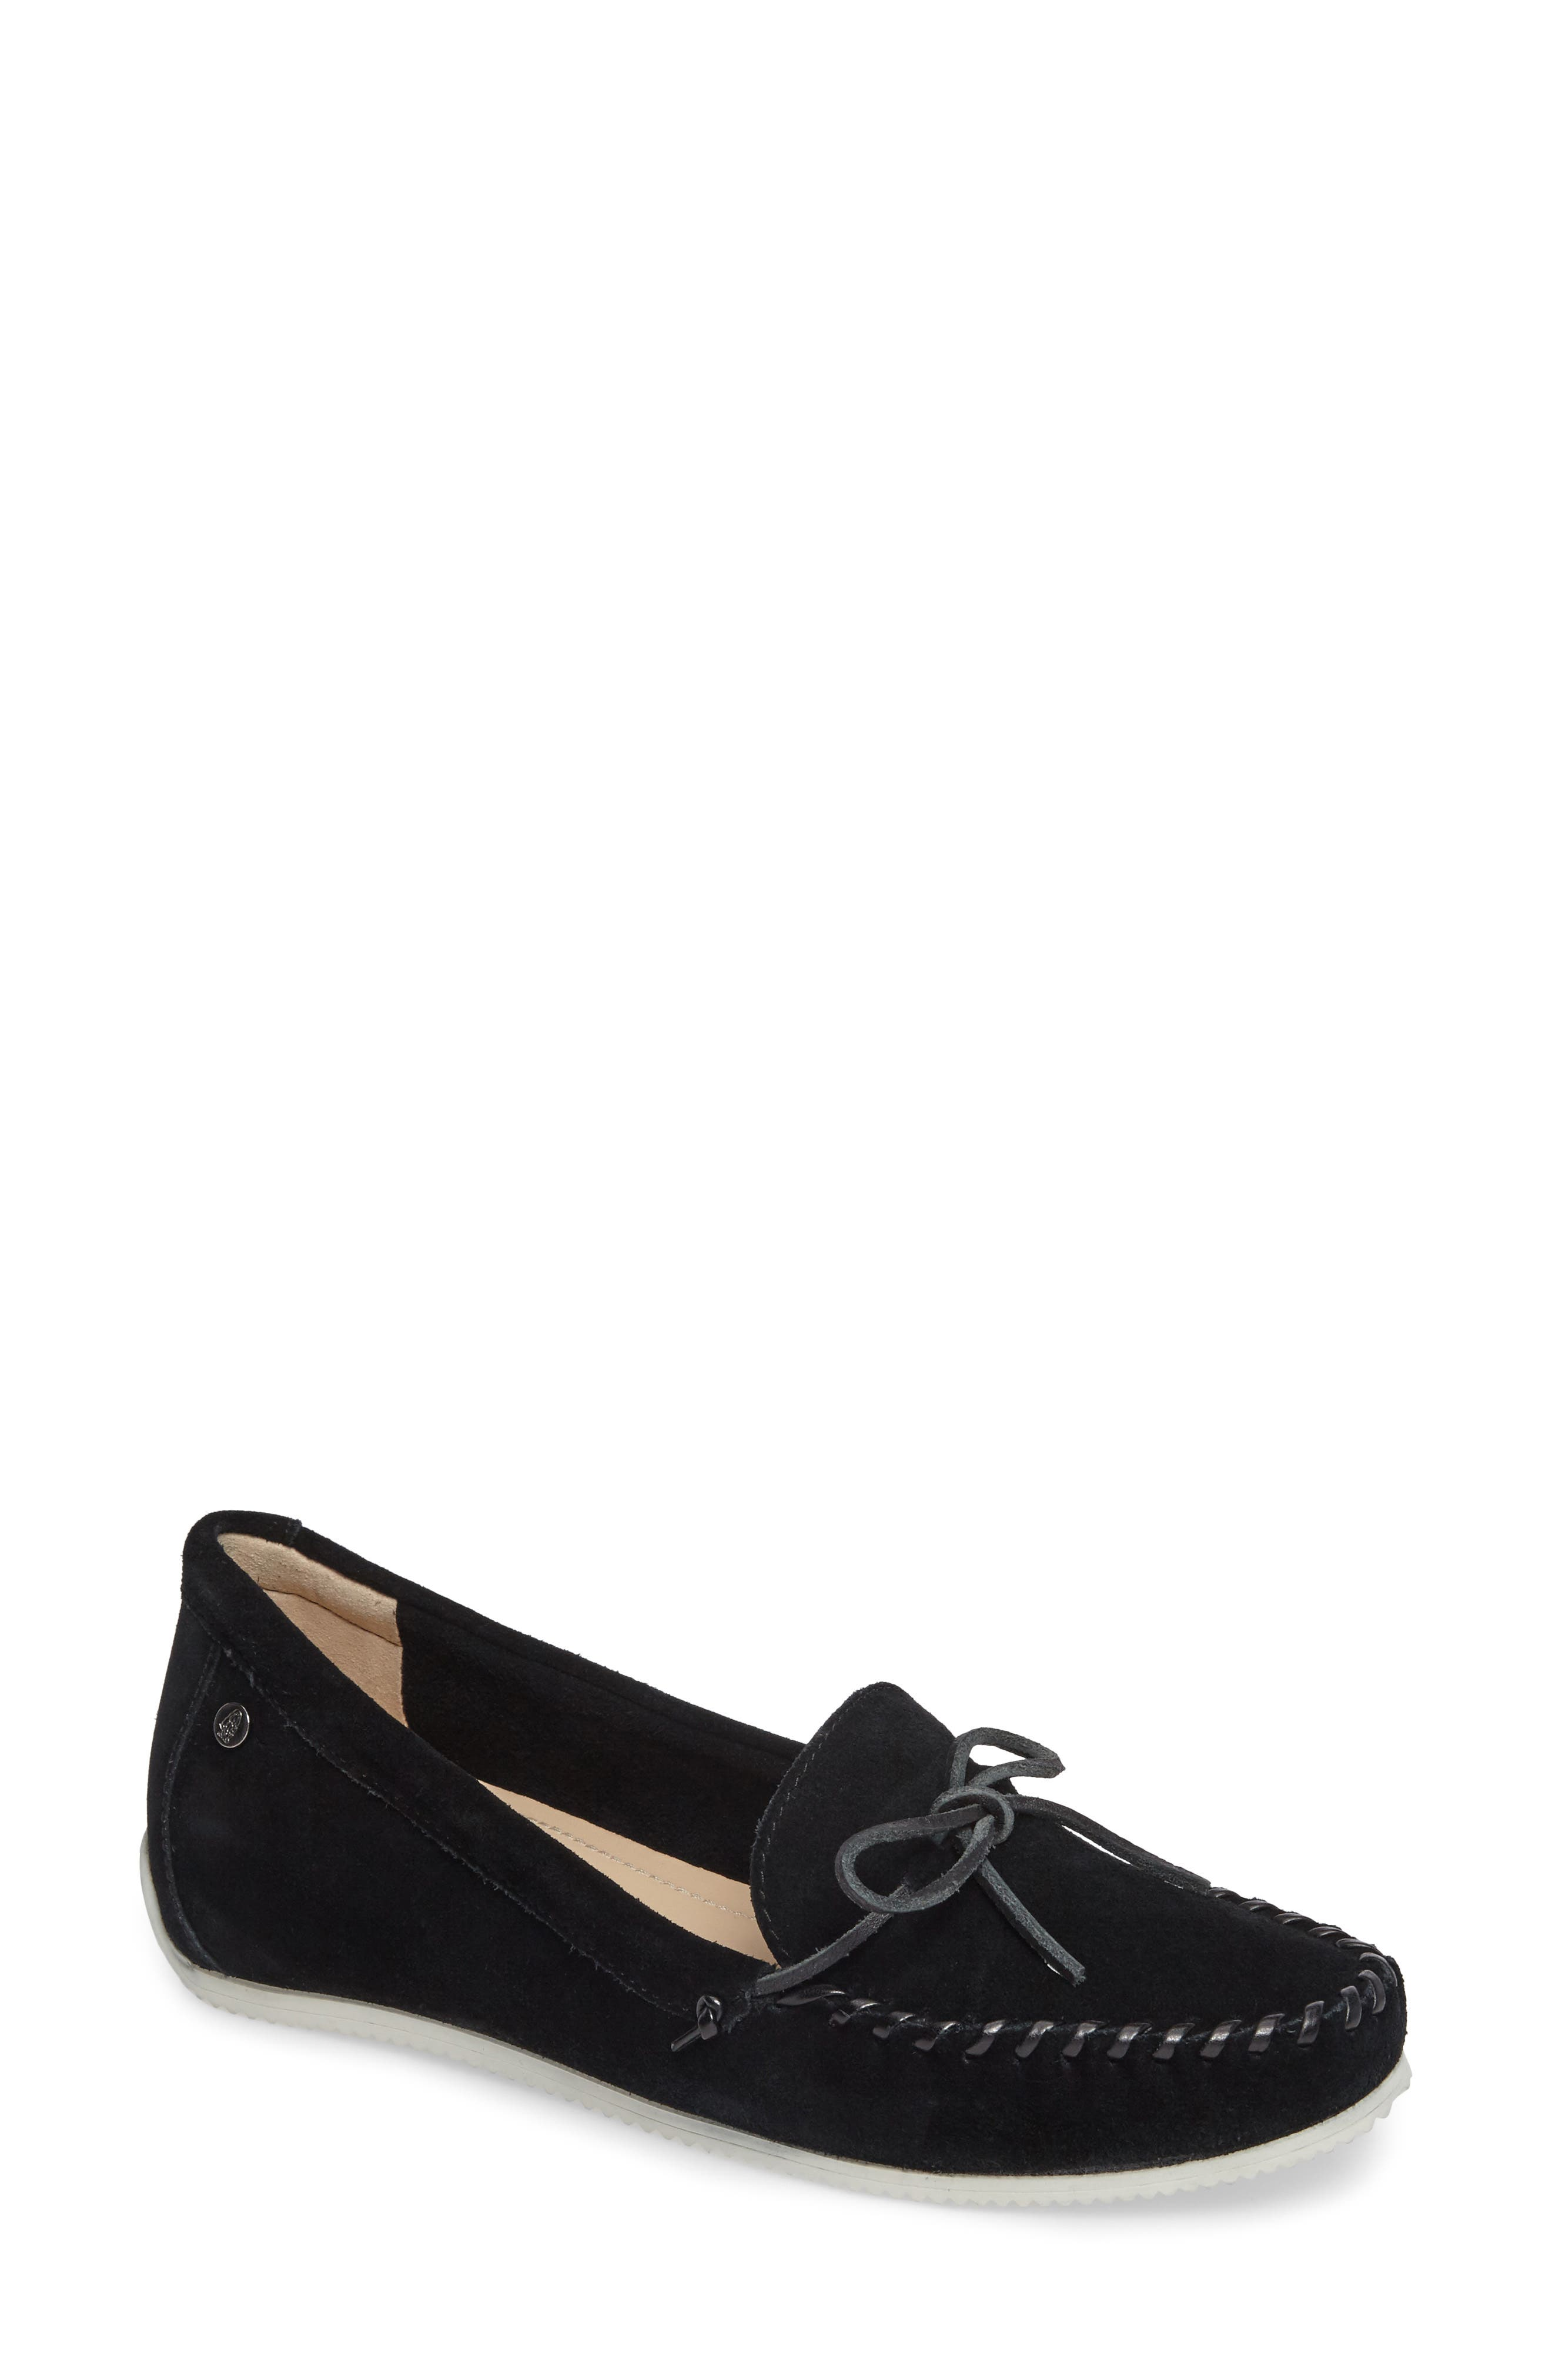 Larghetto Carine Concealed Wedge Moccasin,                             Main thumbnail 1, color,                             BLACK SUEDE